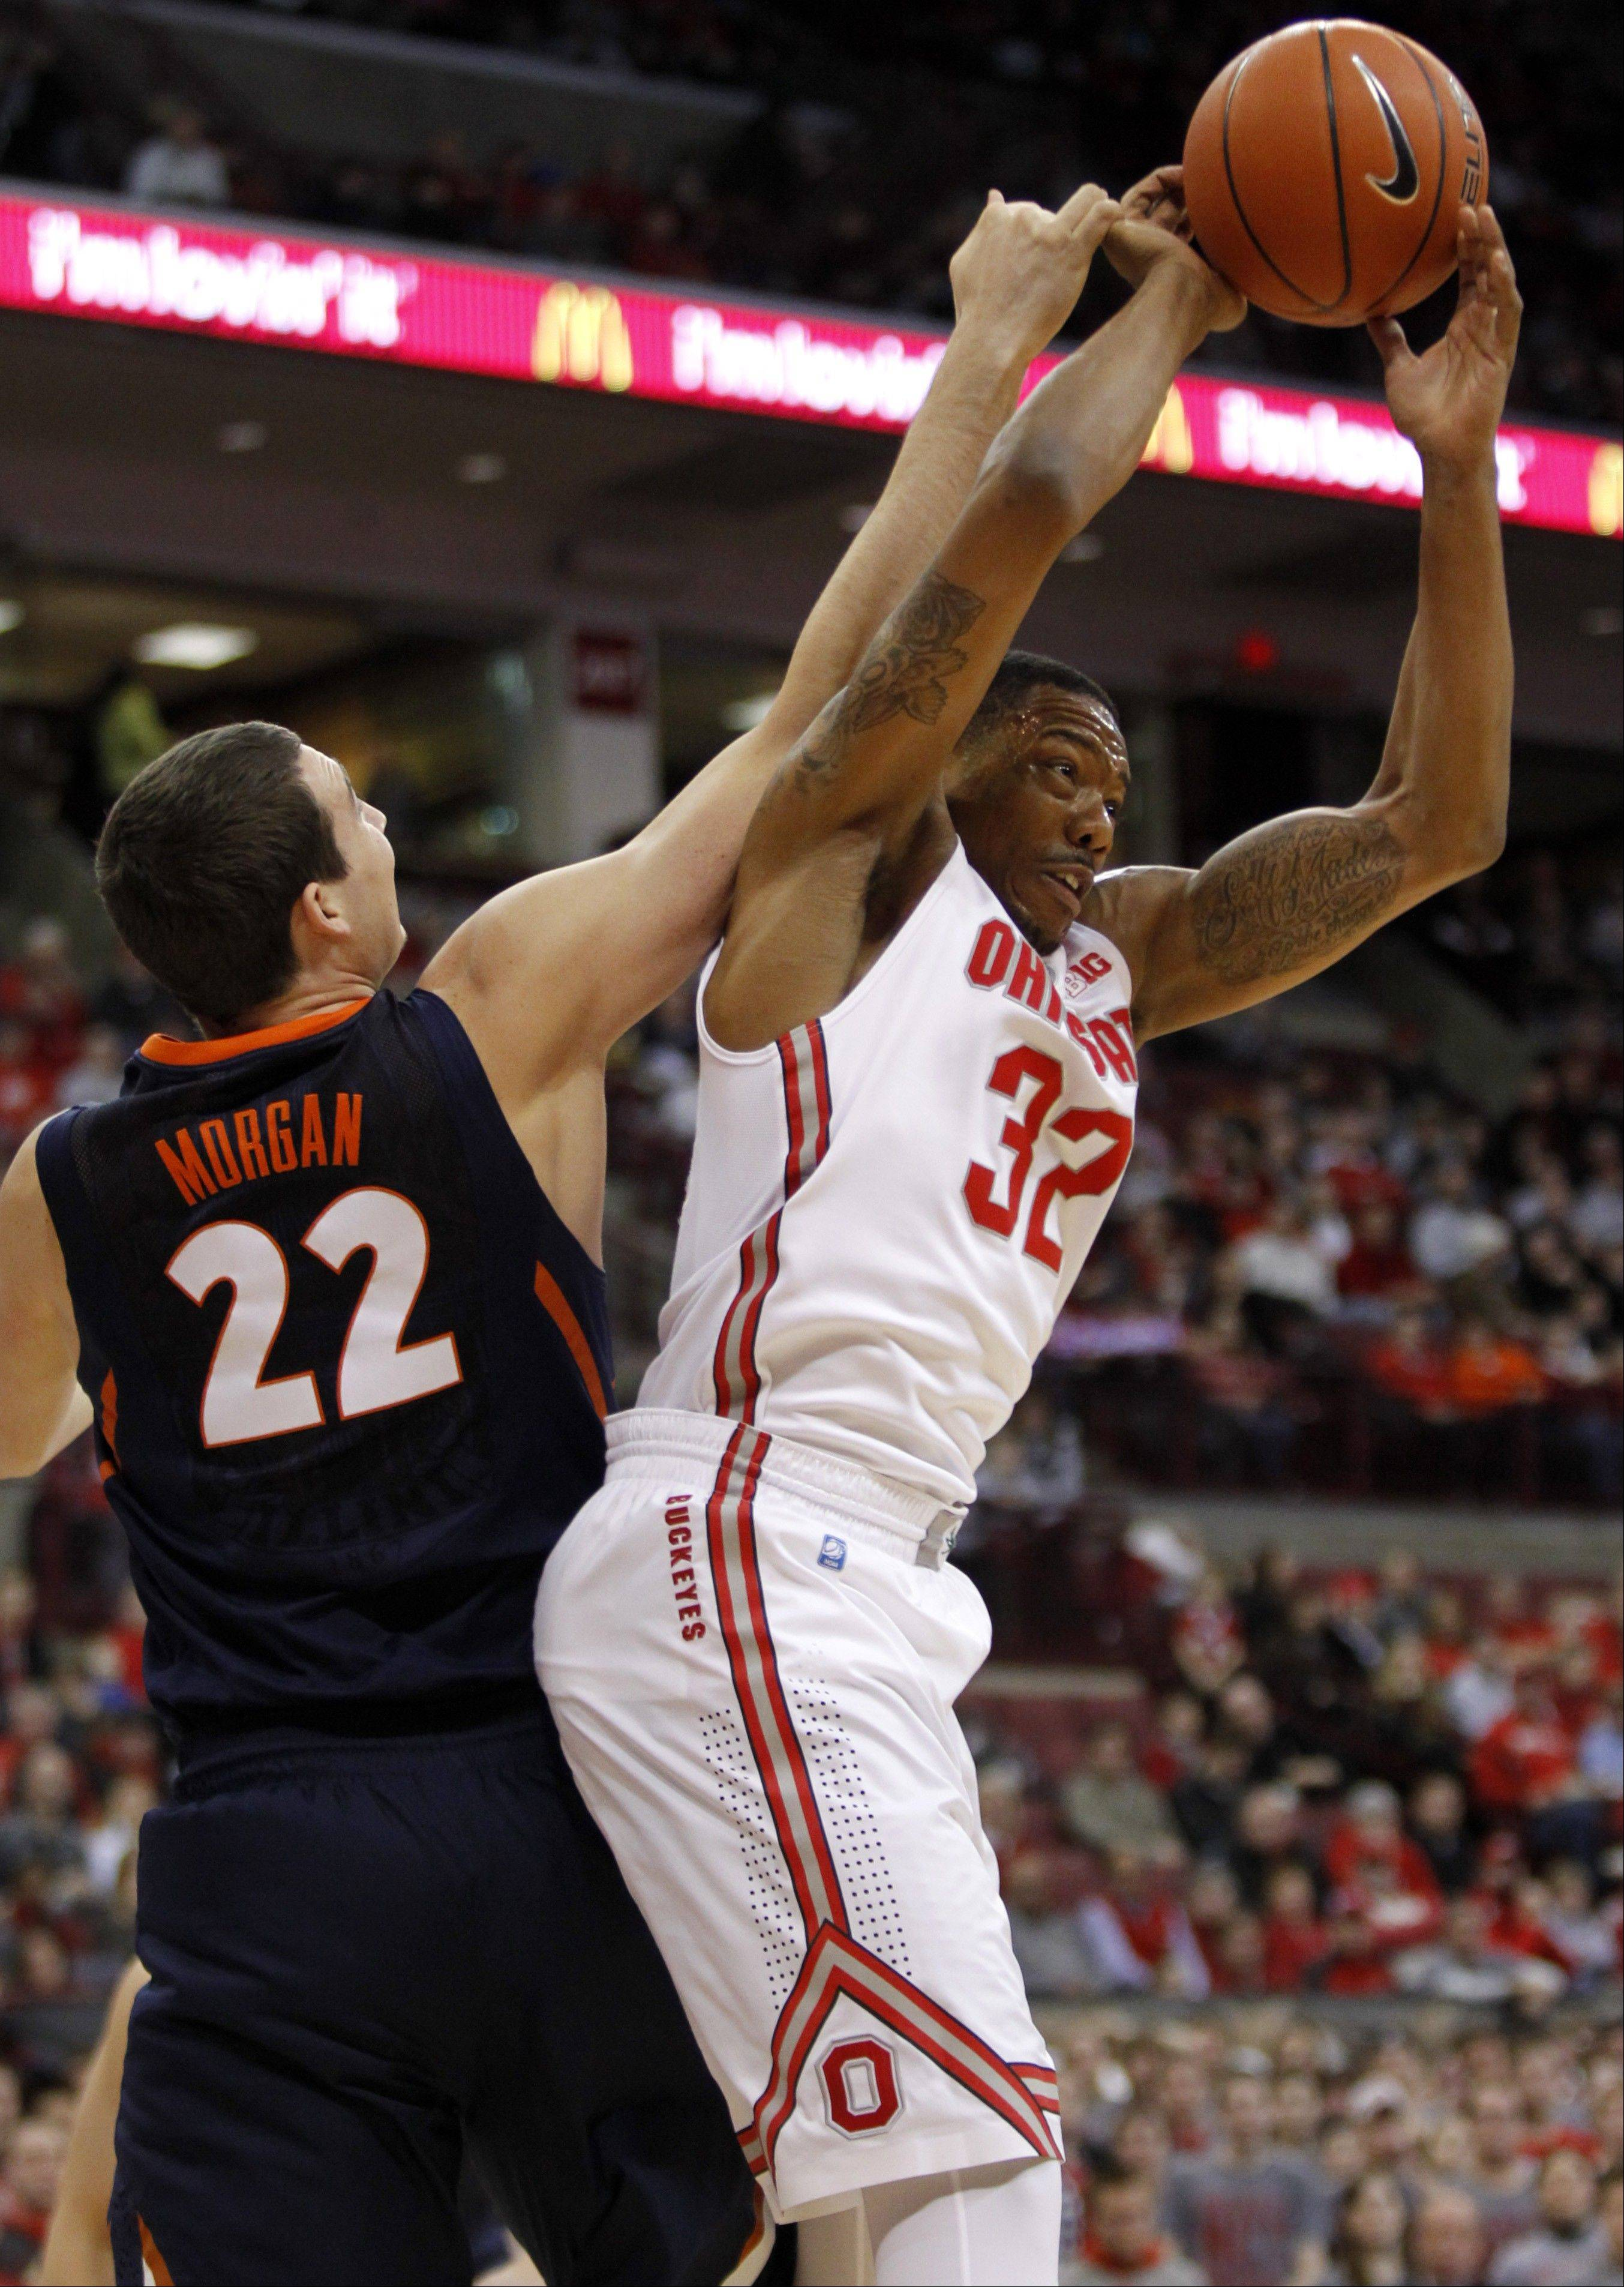 Ohio State's Lenzelle Smith Jr., right, grabs a rebound against Illinois' Maverick Morgan during the first half of an NCAA college basketball game in Columbus, Ohio, Thursday, Jan. 23, 2014. ( AP Photo/Paul Vernon)